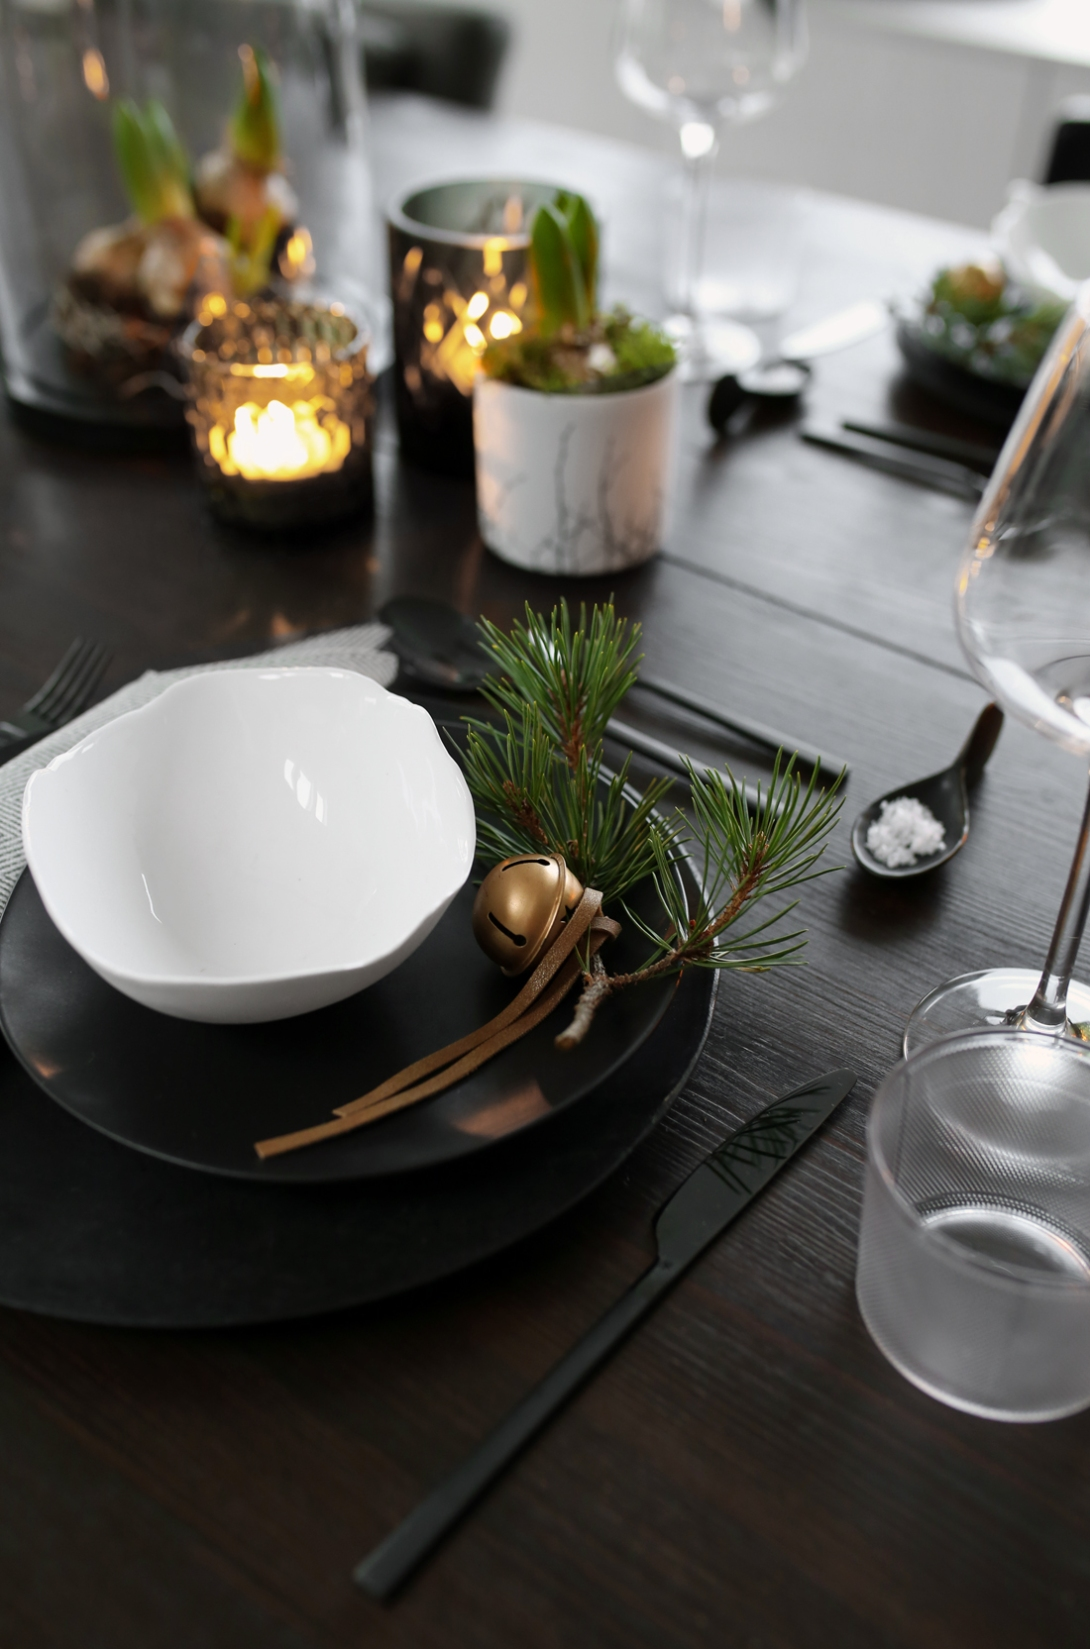 Christmas-table-setting-by-Therese-Knutsen-0178-1100